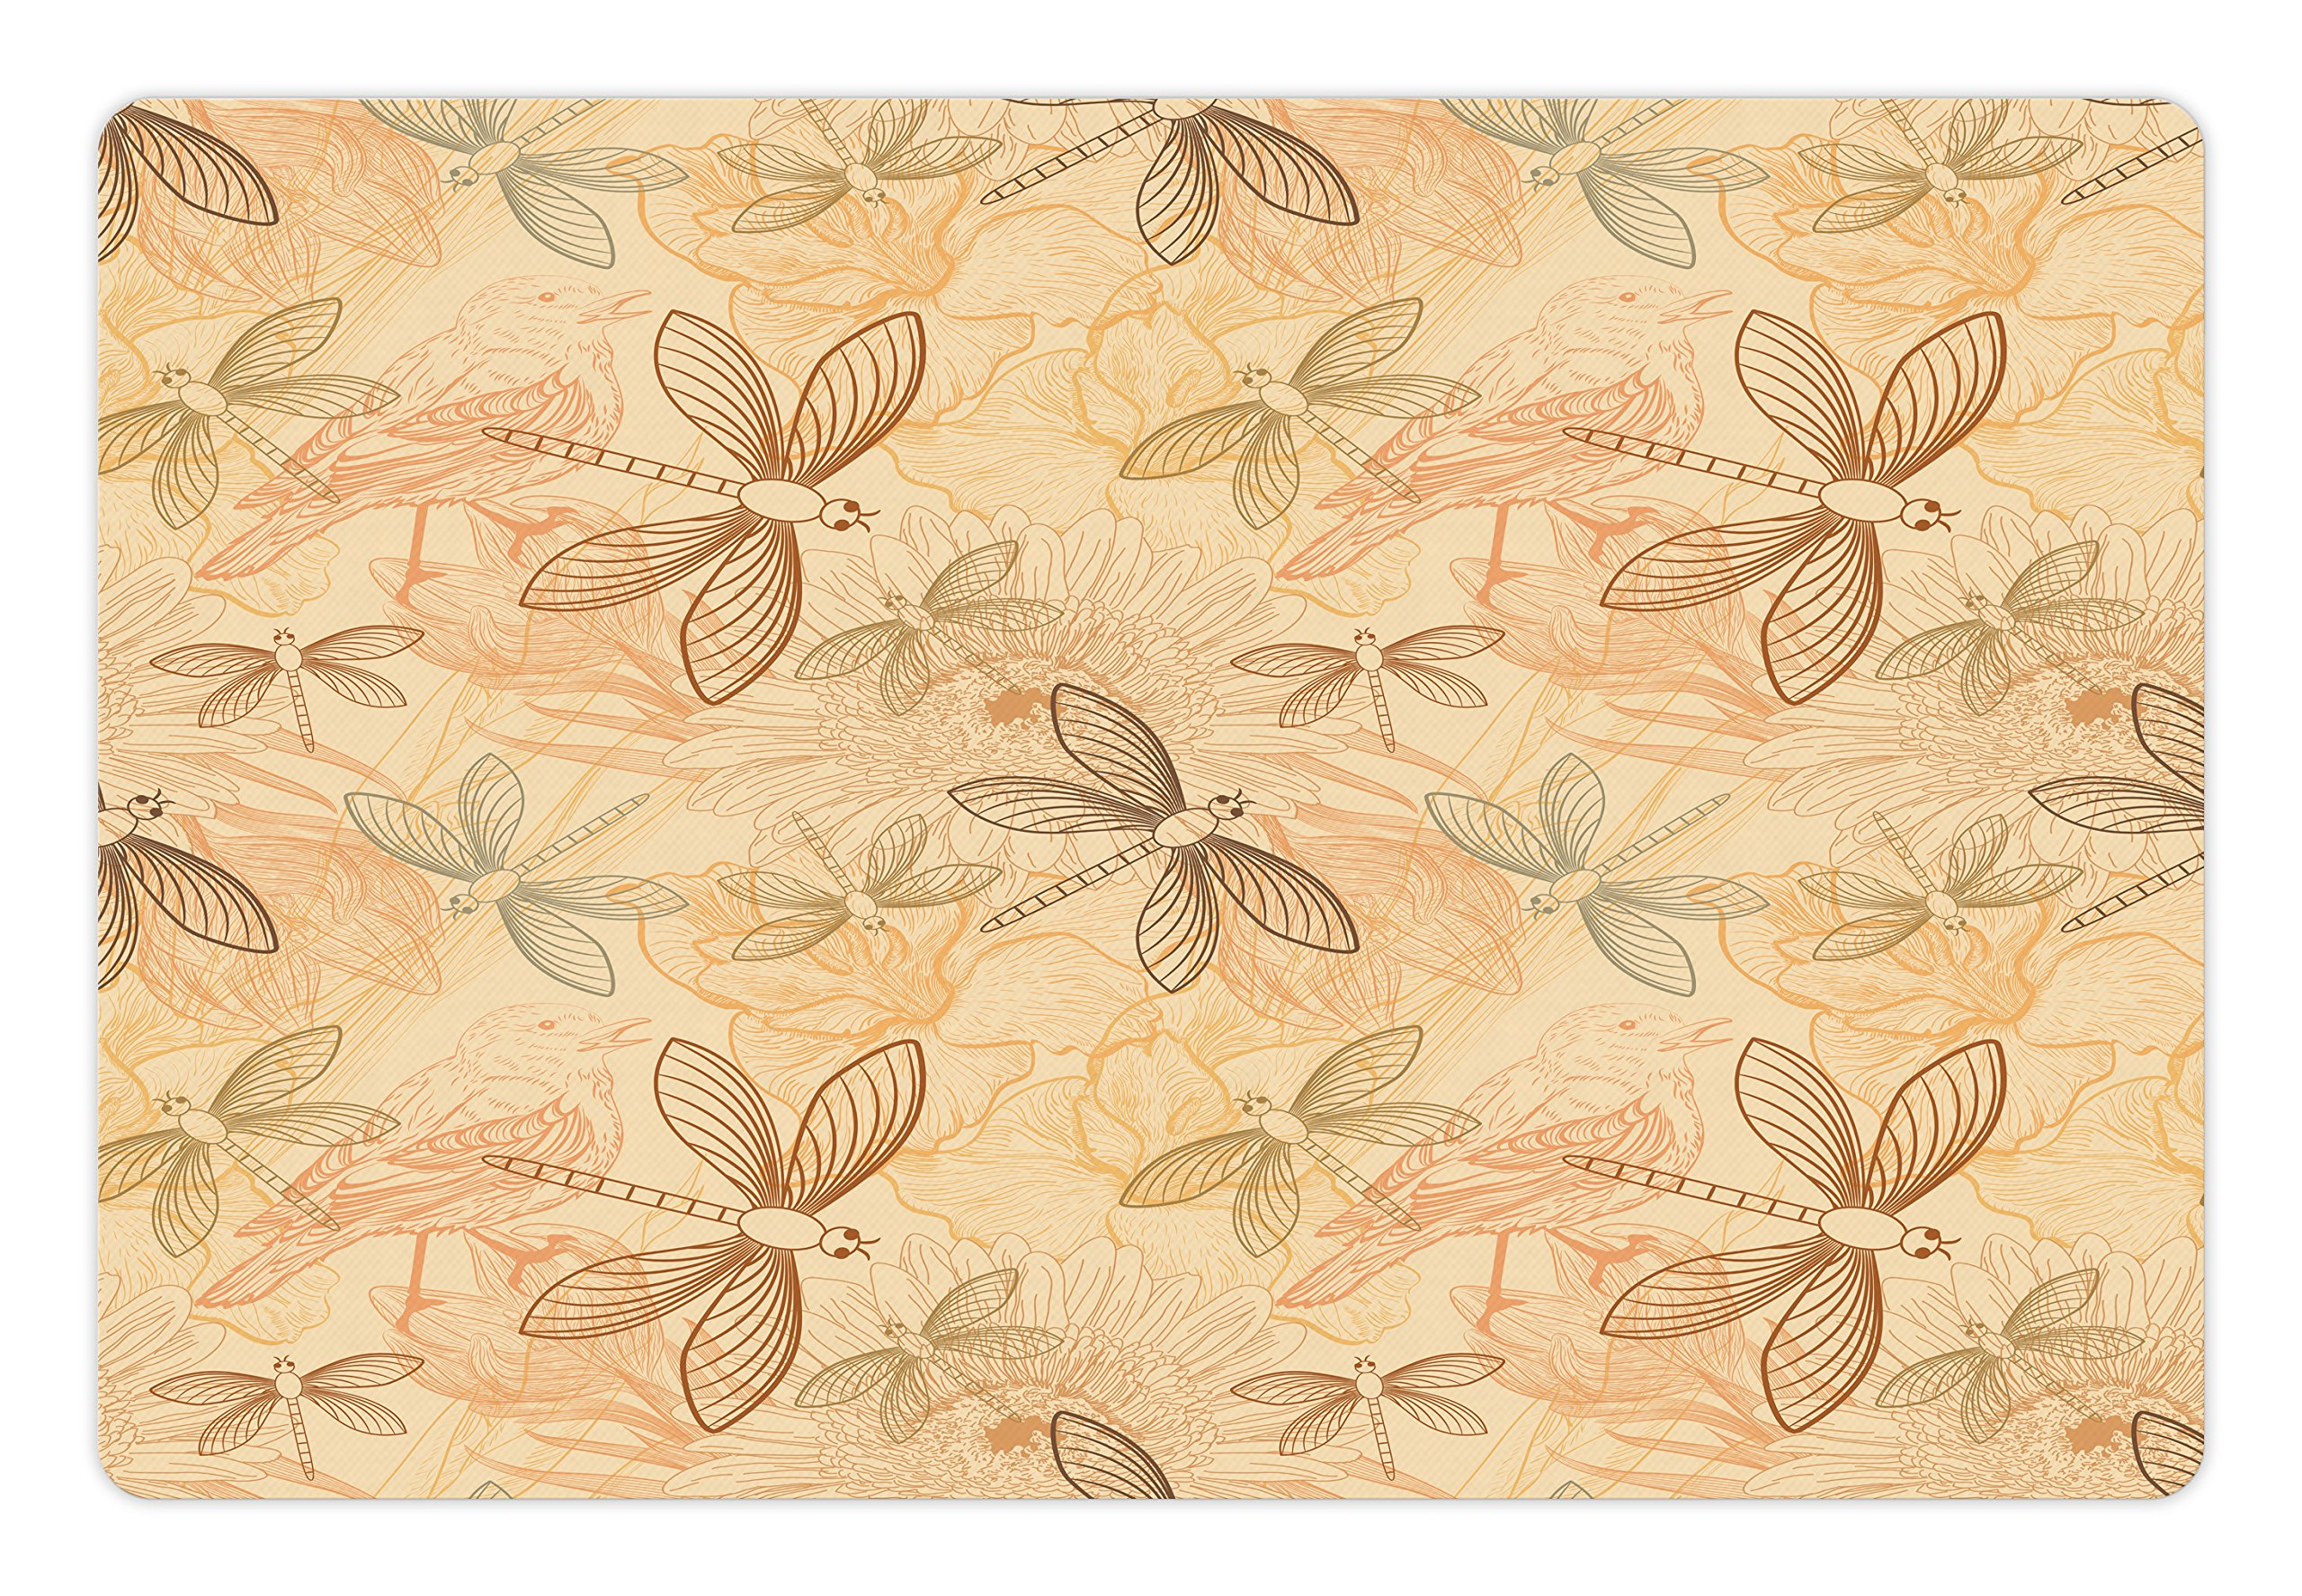 Ambesonne Beige Pet Mat for Food and Water, Vintage Birds and Dragonflies Artprint with Modern Doodle Style Animal Inspired Decor, Rectangle Non-Slip Rubber Mat for Dogs and Cats, Cream